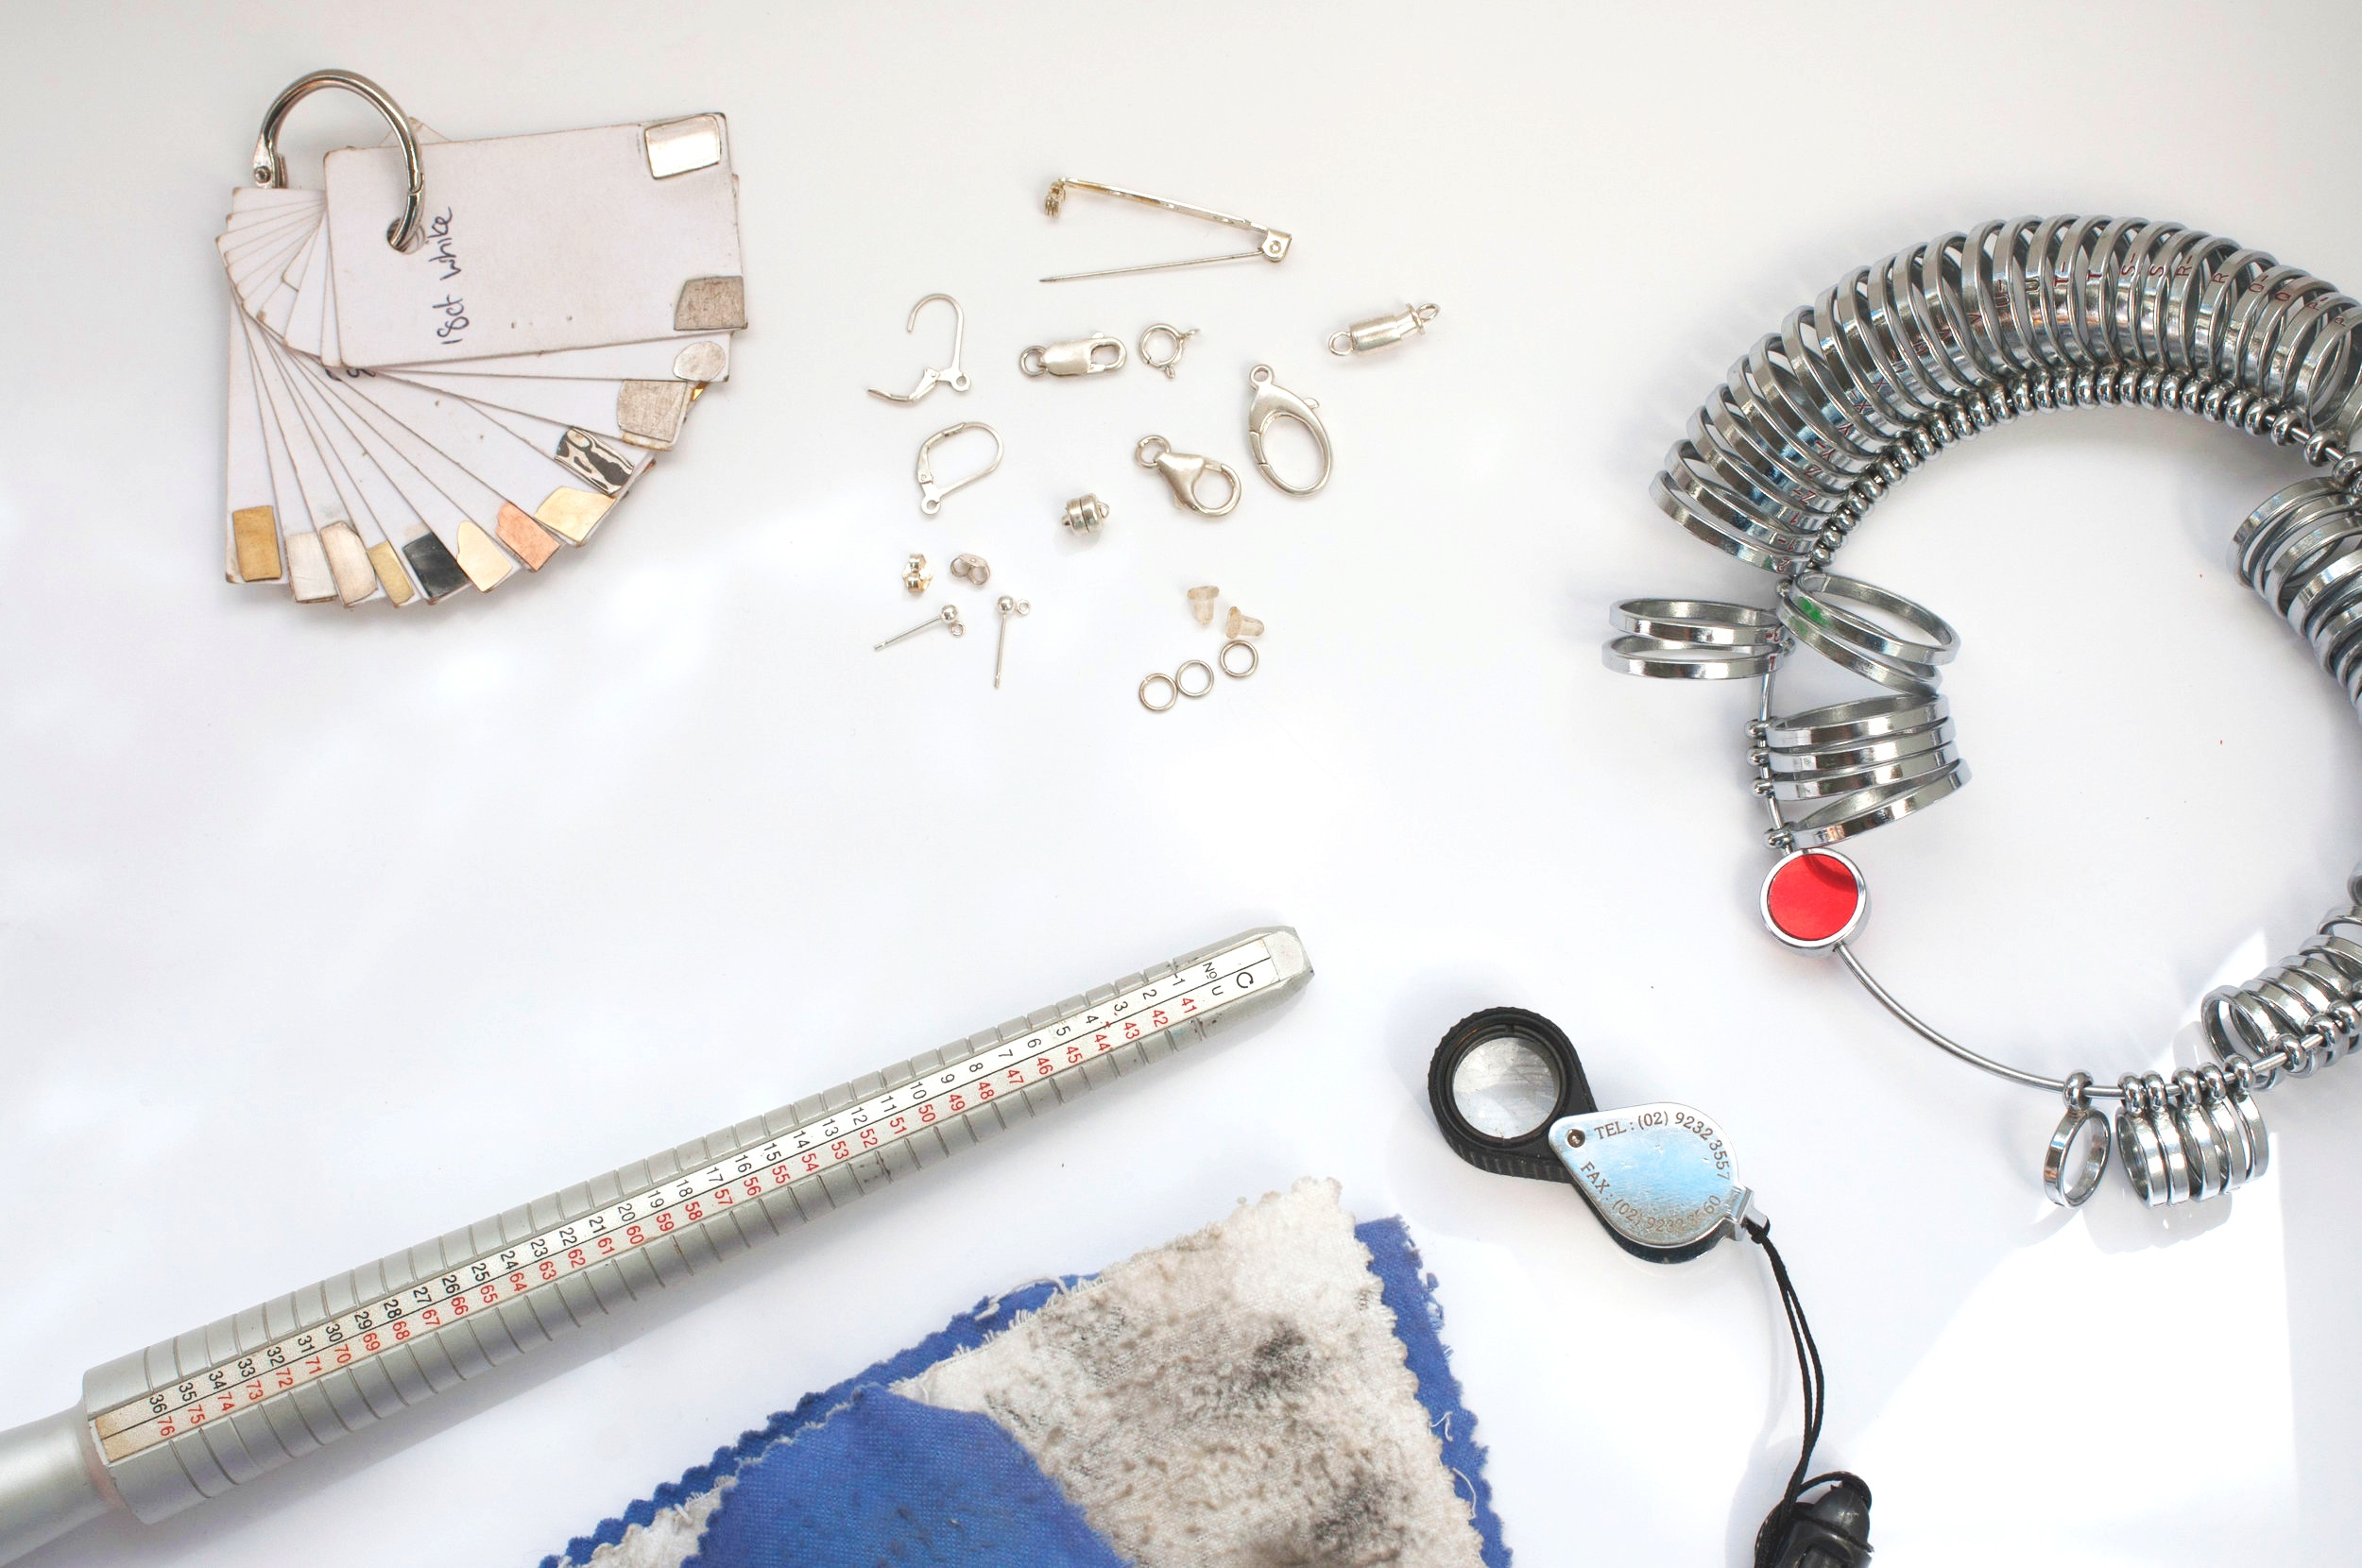 Samples of different metal colours, ring sizing equipment and some silver findings, all useful for altering and designing jewellery!